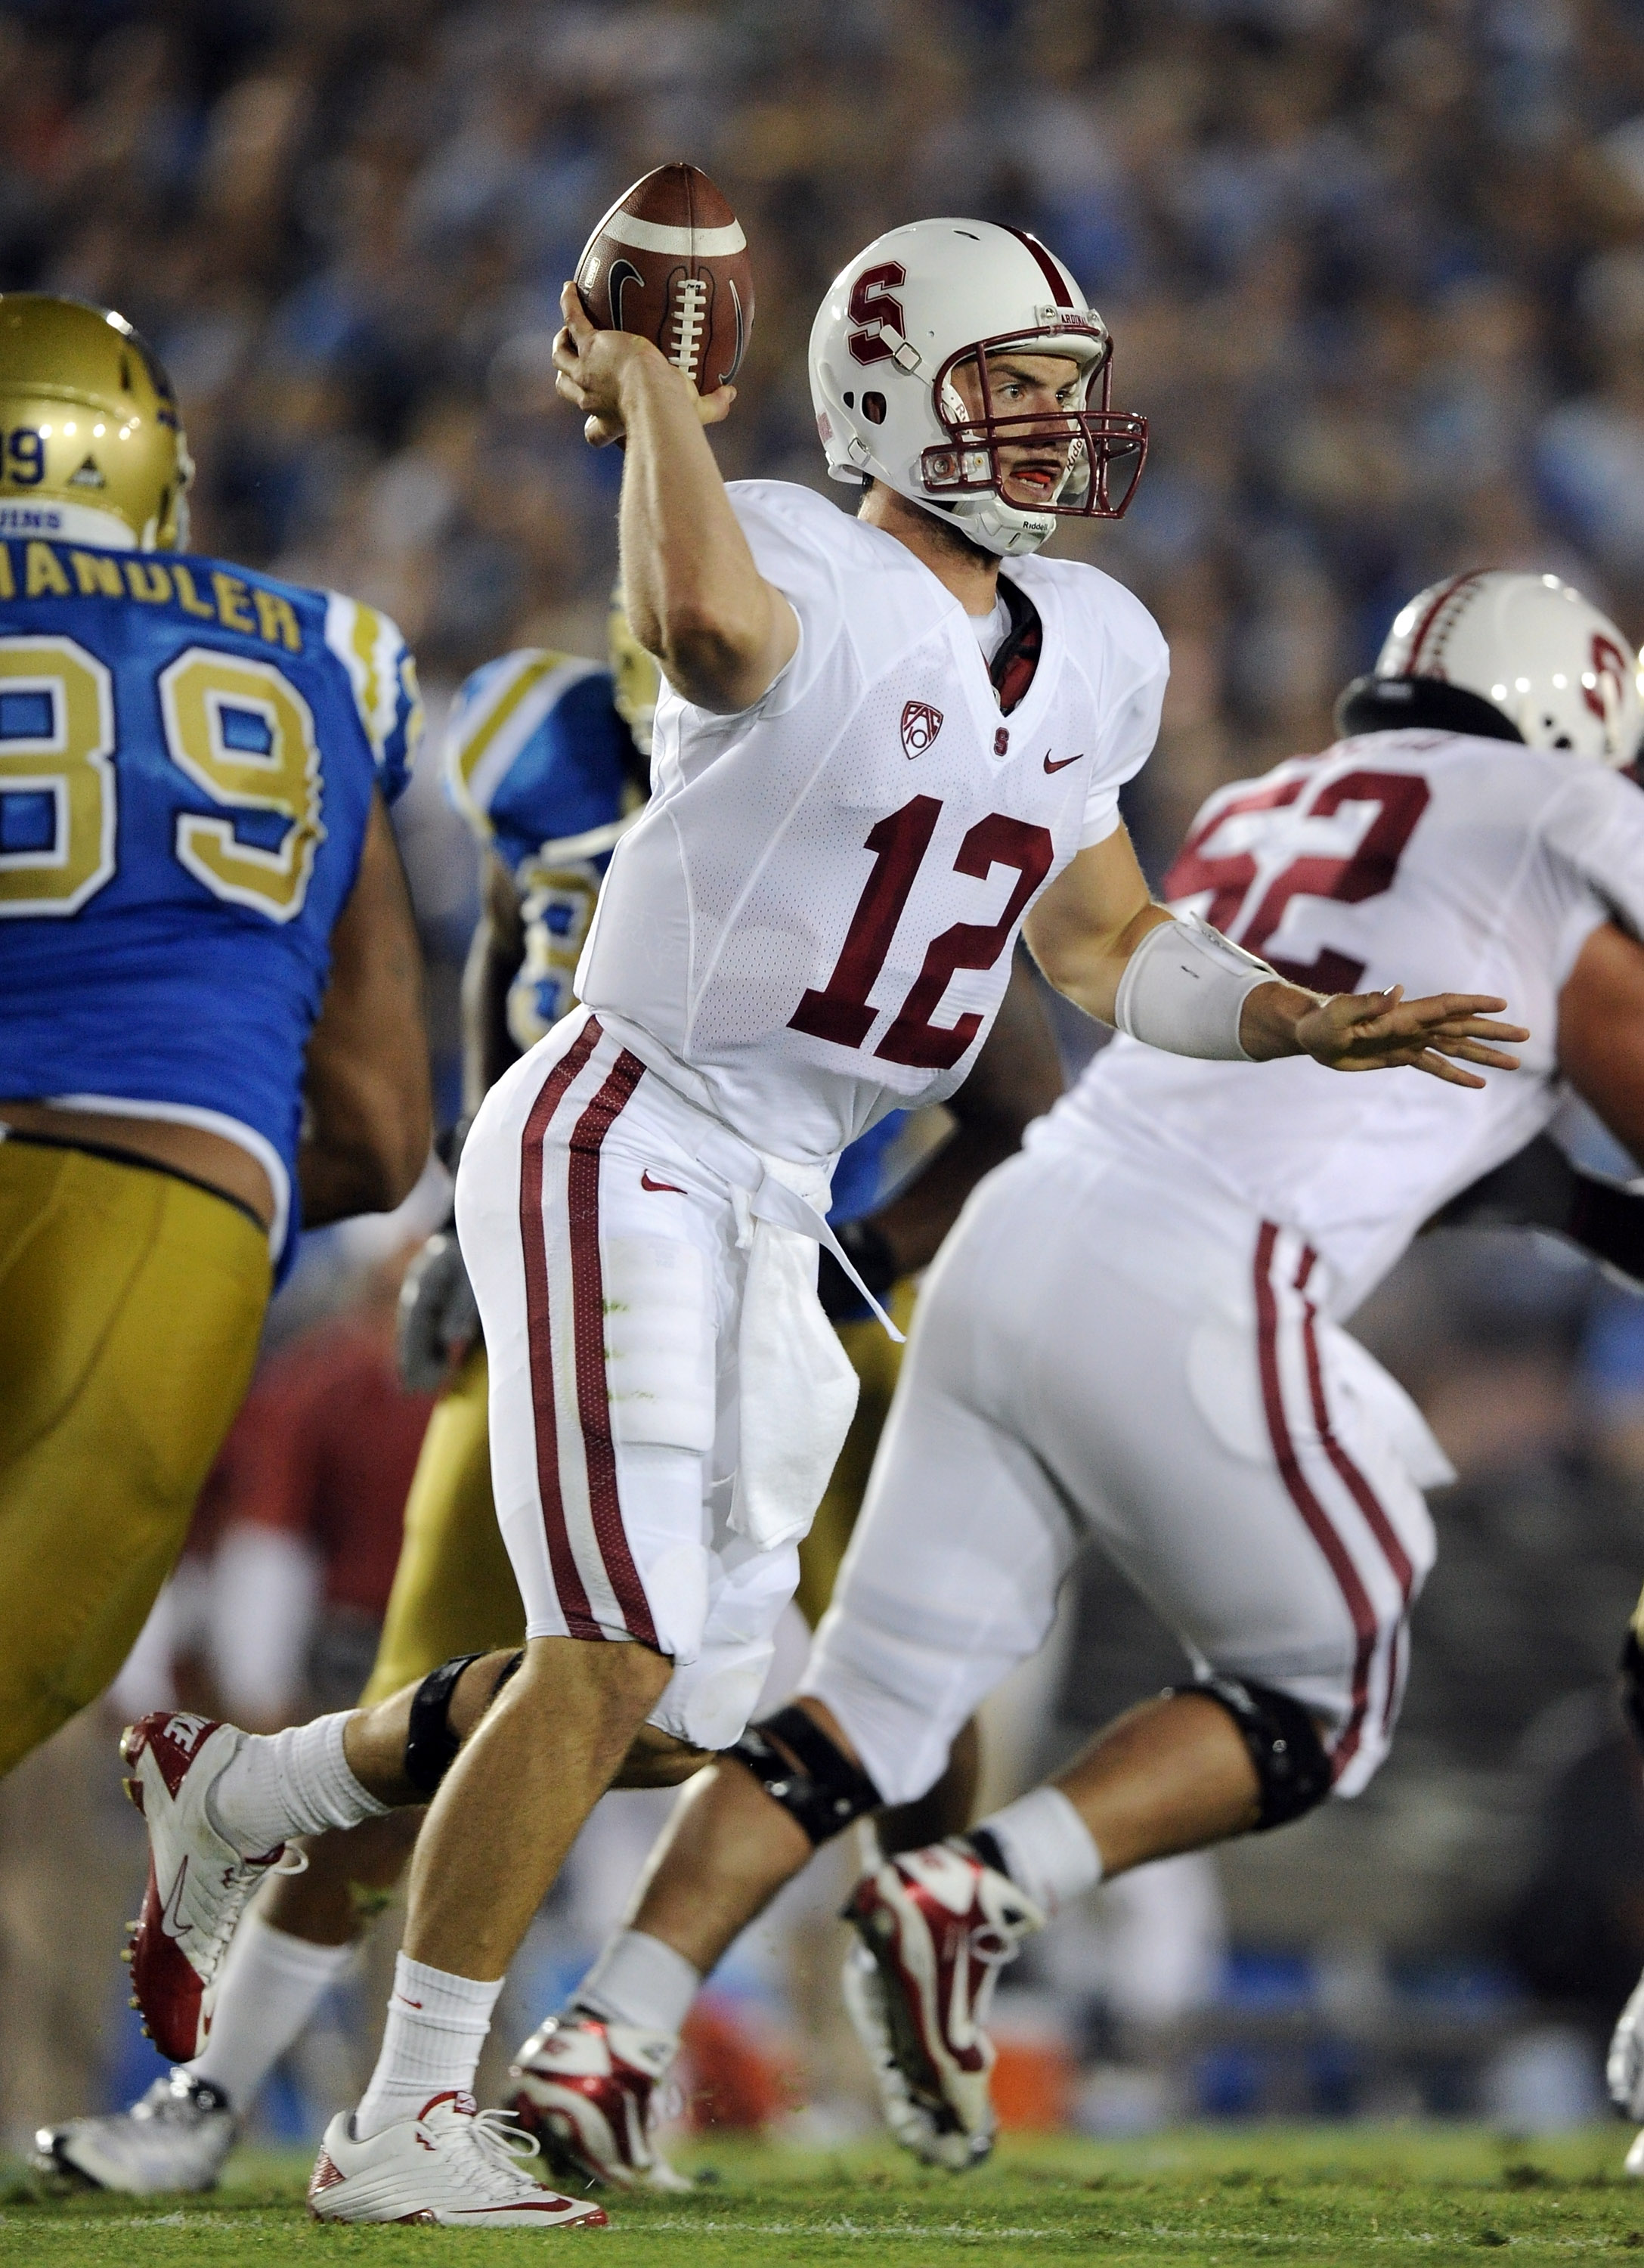 PASADENA, CA - SEPTEMBER 11:  Andrew Luck #12 of Stanford passes in the pocket against UCLA during the first quarter at Rose Bowl on September 11, 2010 in Pasadena, California.  (Photo by Harry How/Getty Images)